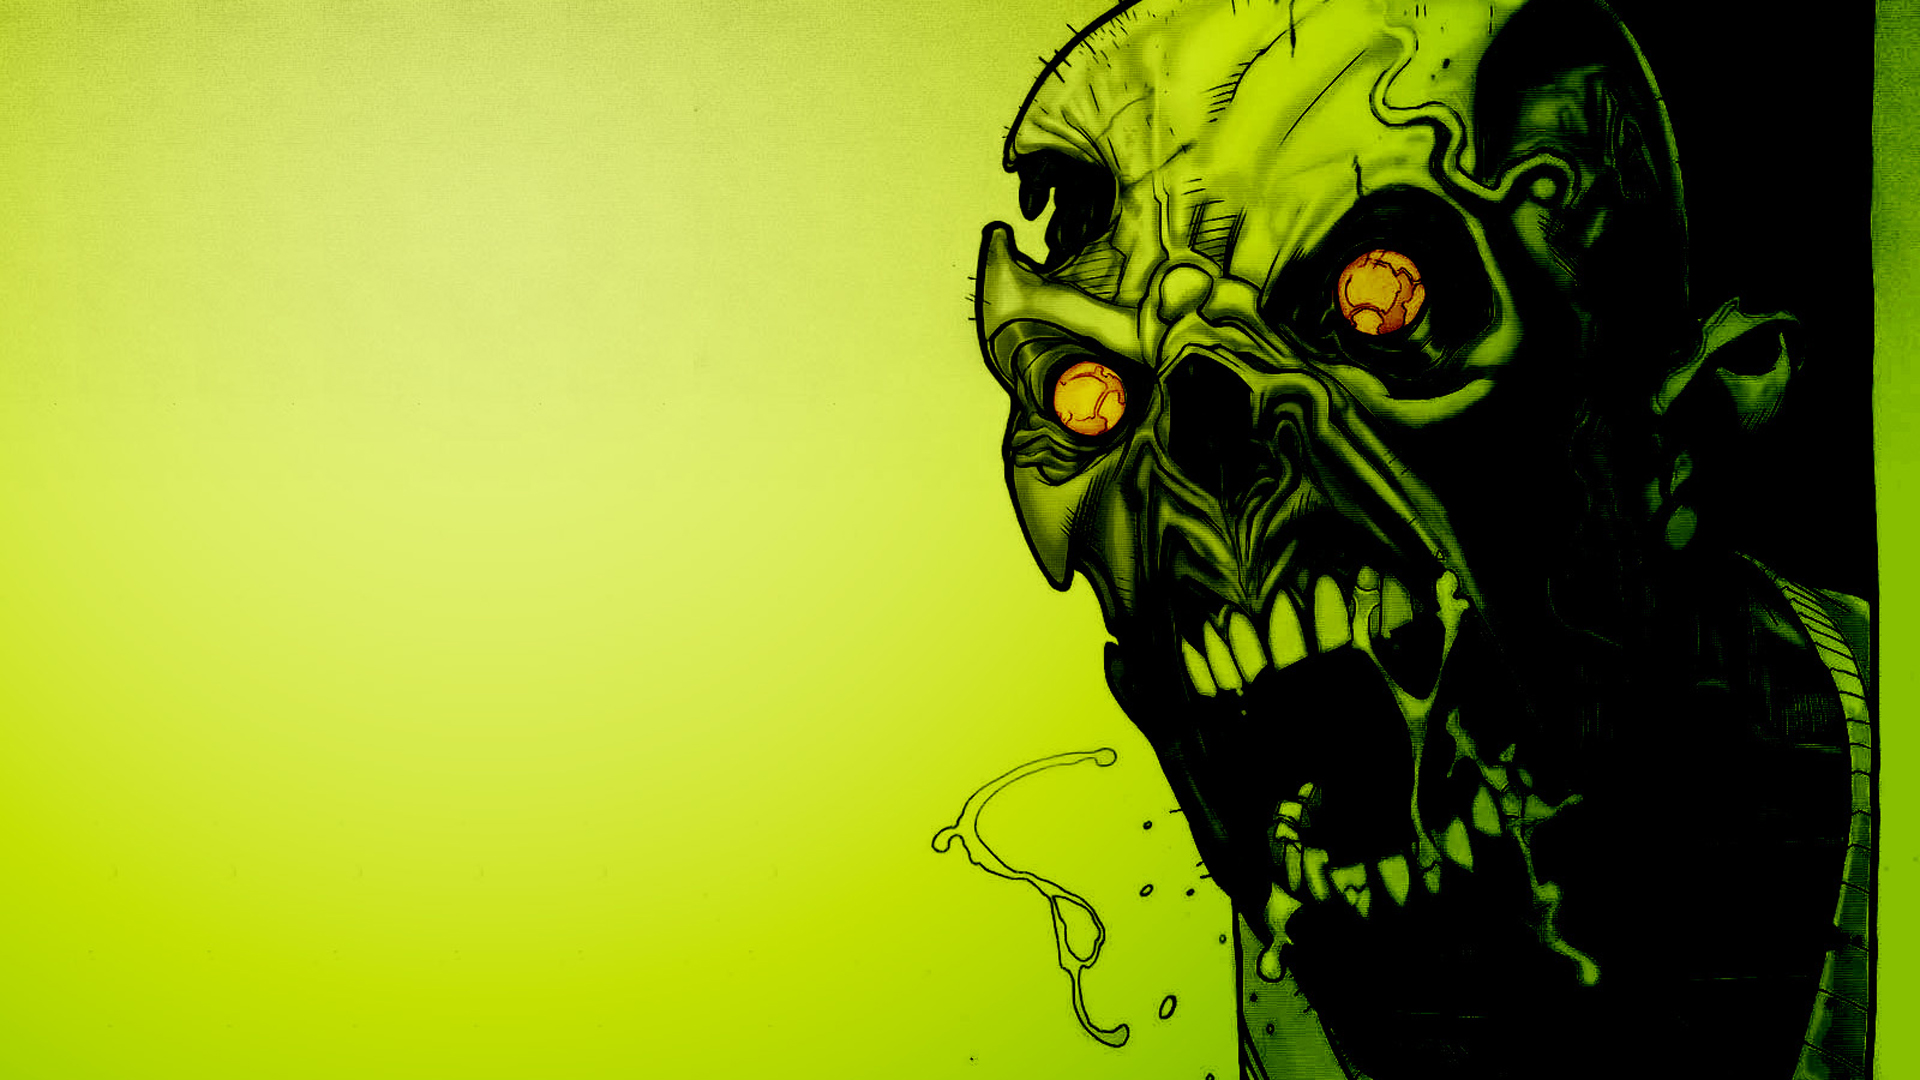 Google chrome themes zombie - Wallpapers Google Cool Background Zombie Images 1920x1080